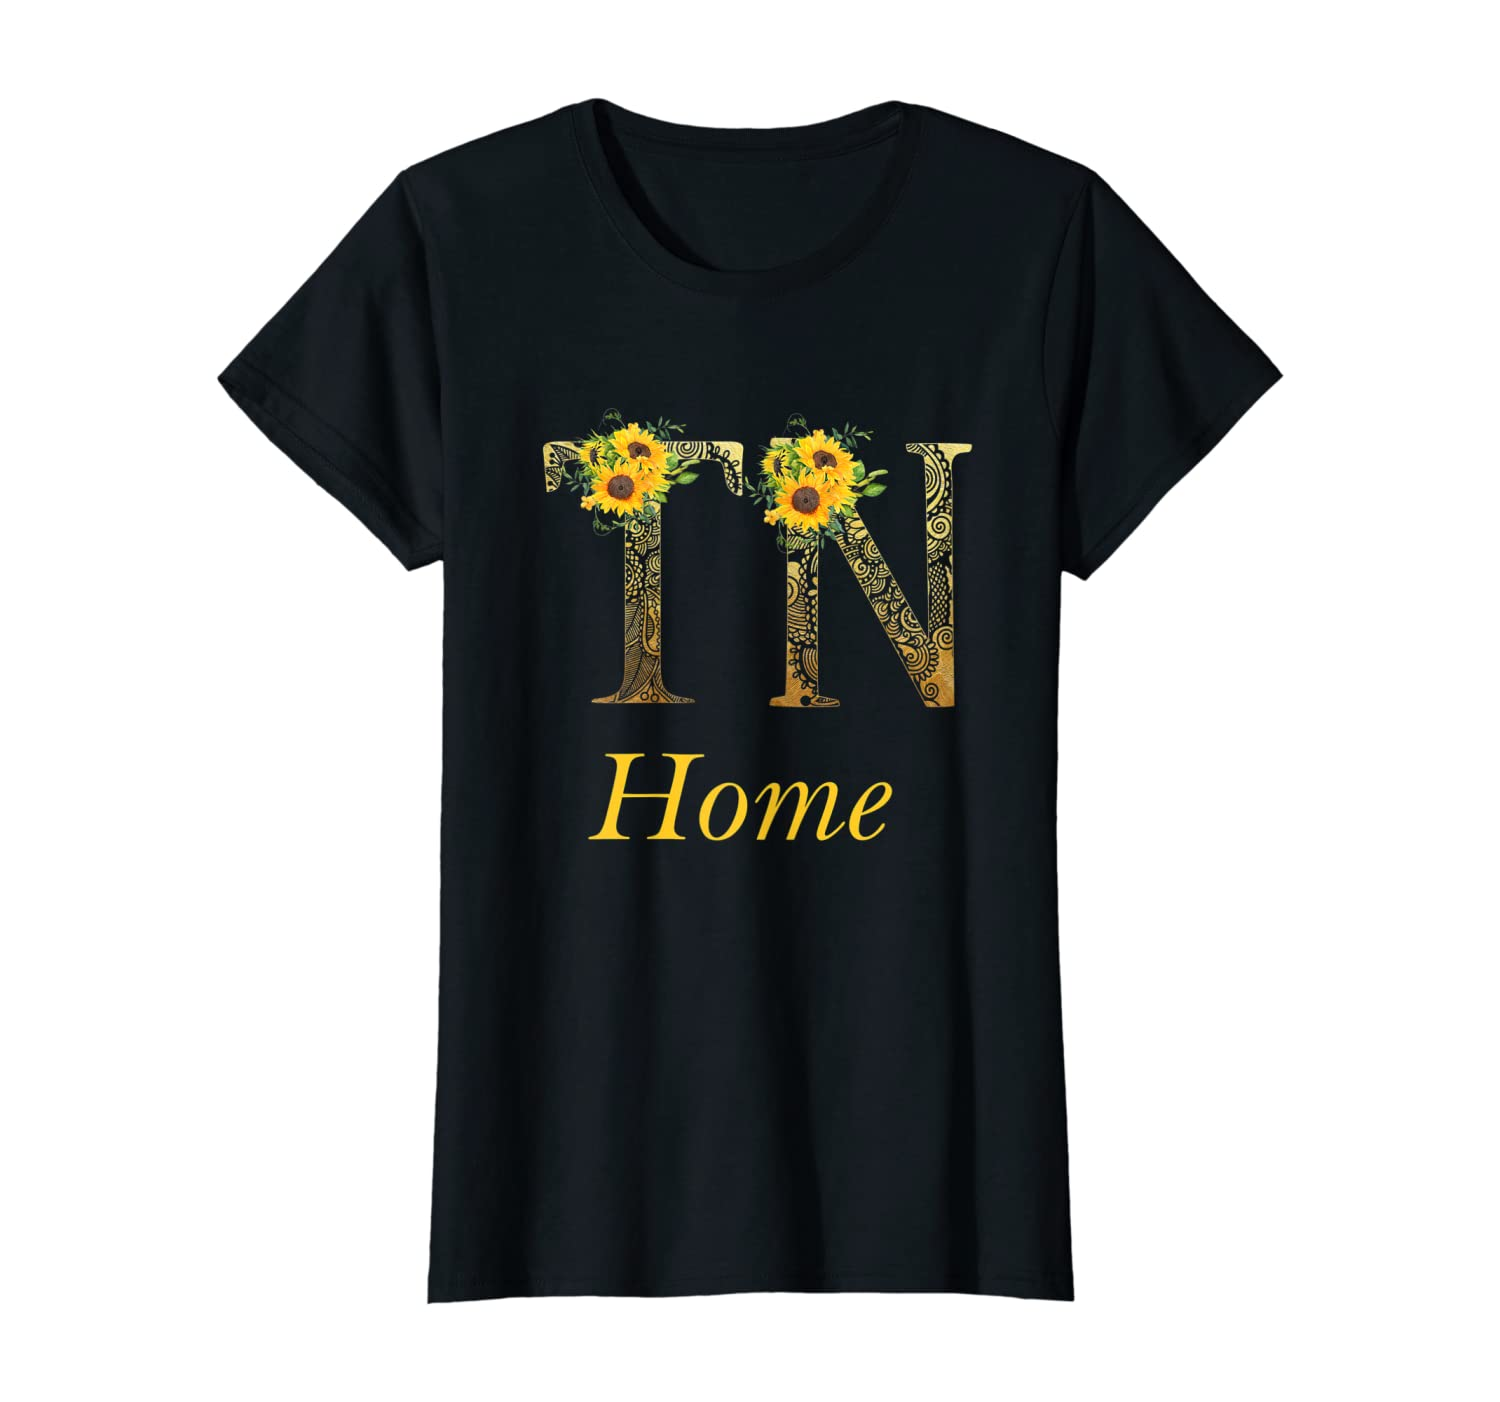 Womens Tennessee Home Roots Pride Sunflower Lover Proud State TN T-Shirt